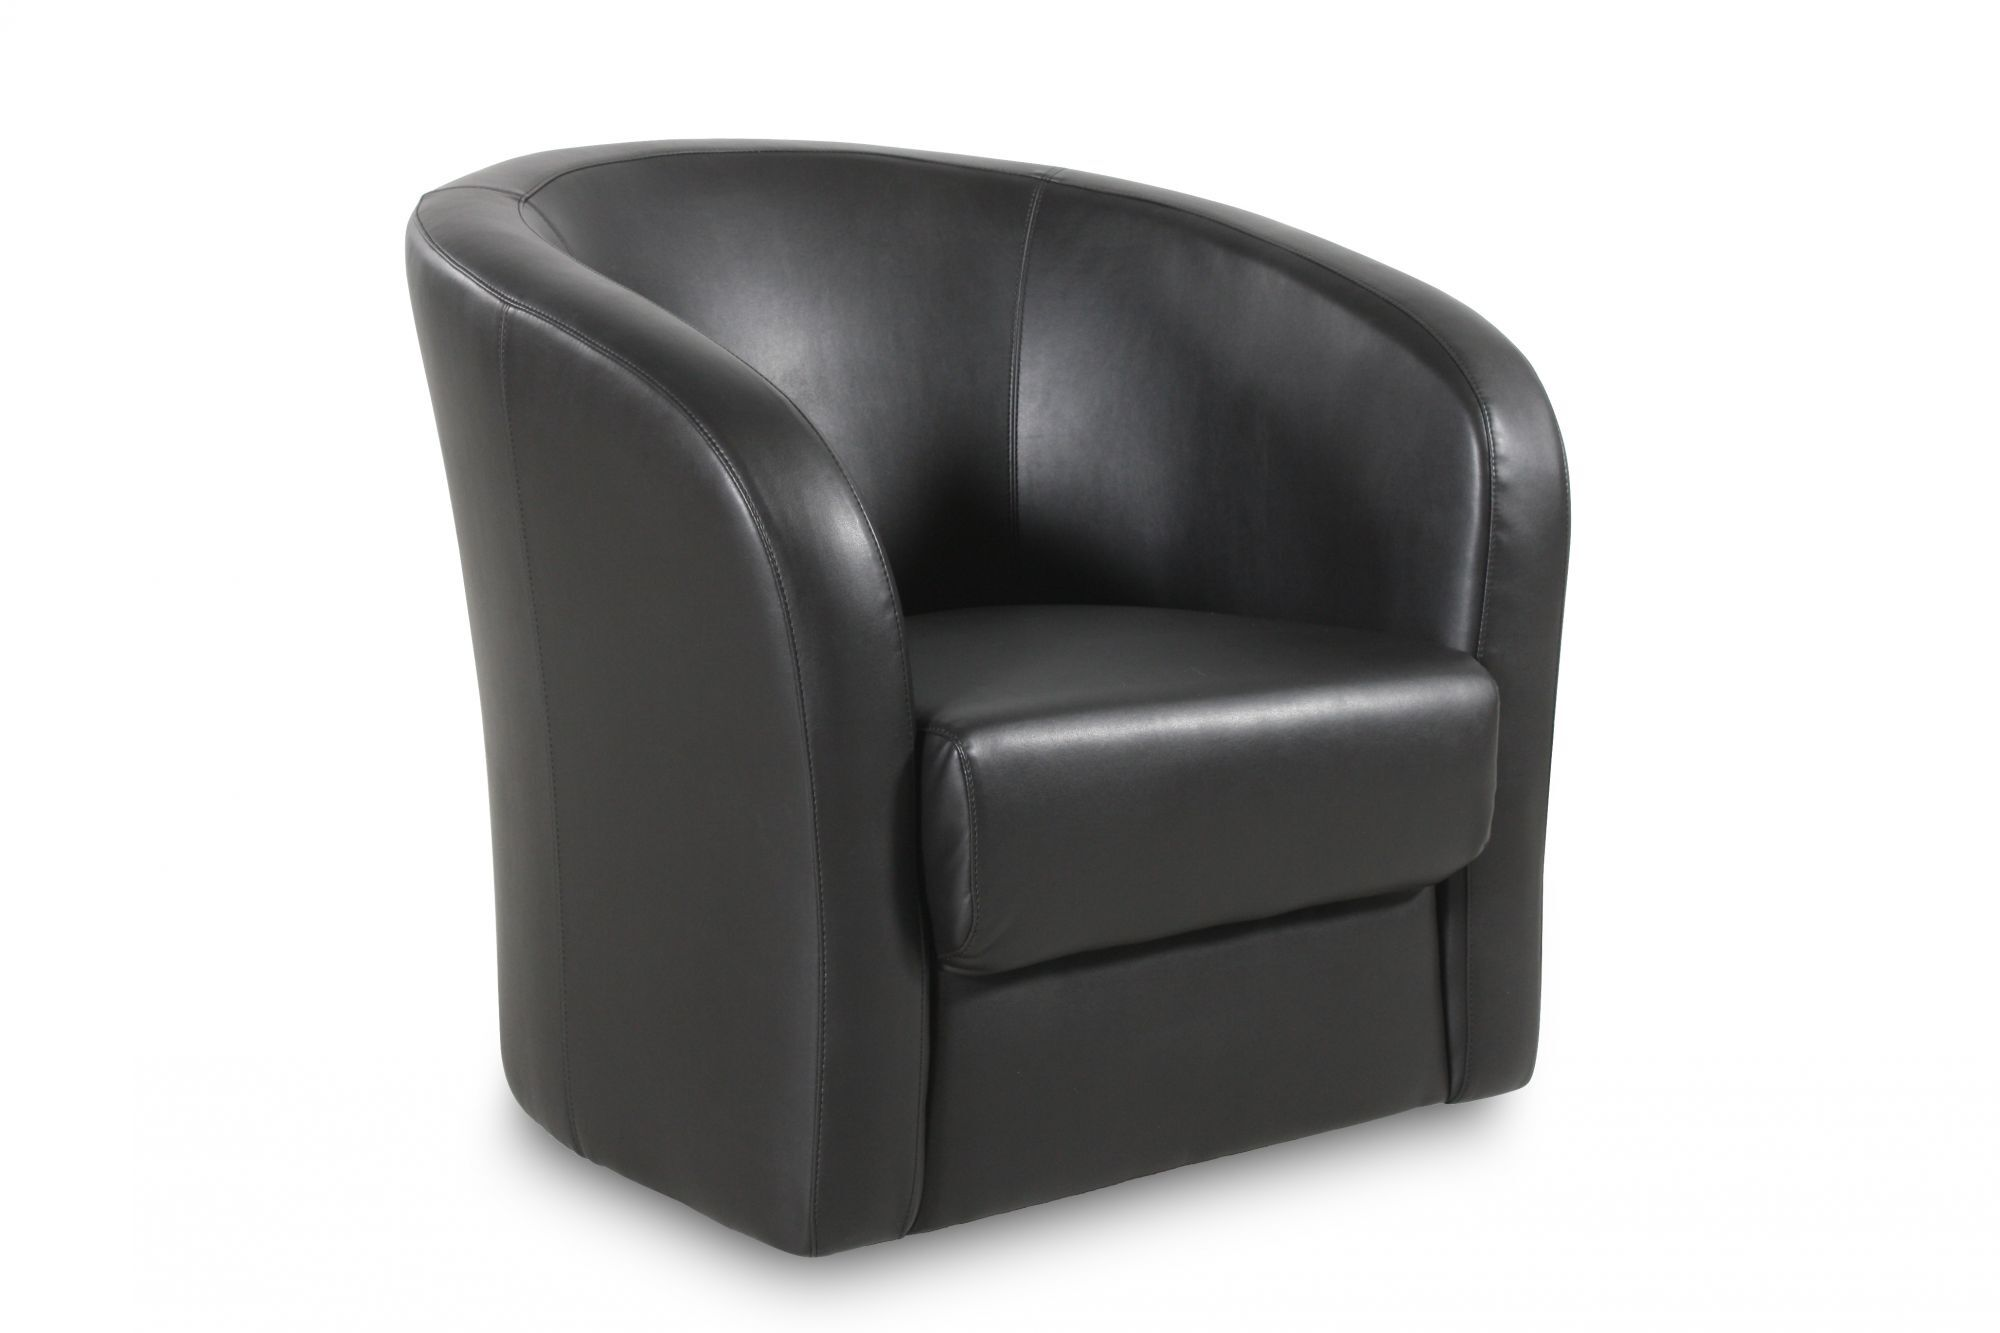 enchanting low seating living room furniture | Low-Back Swivel Chair in Onyx | Mathis Brothers Furniture